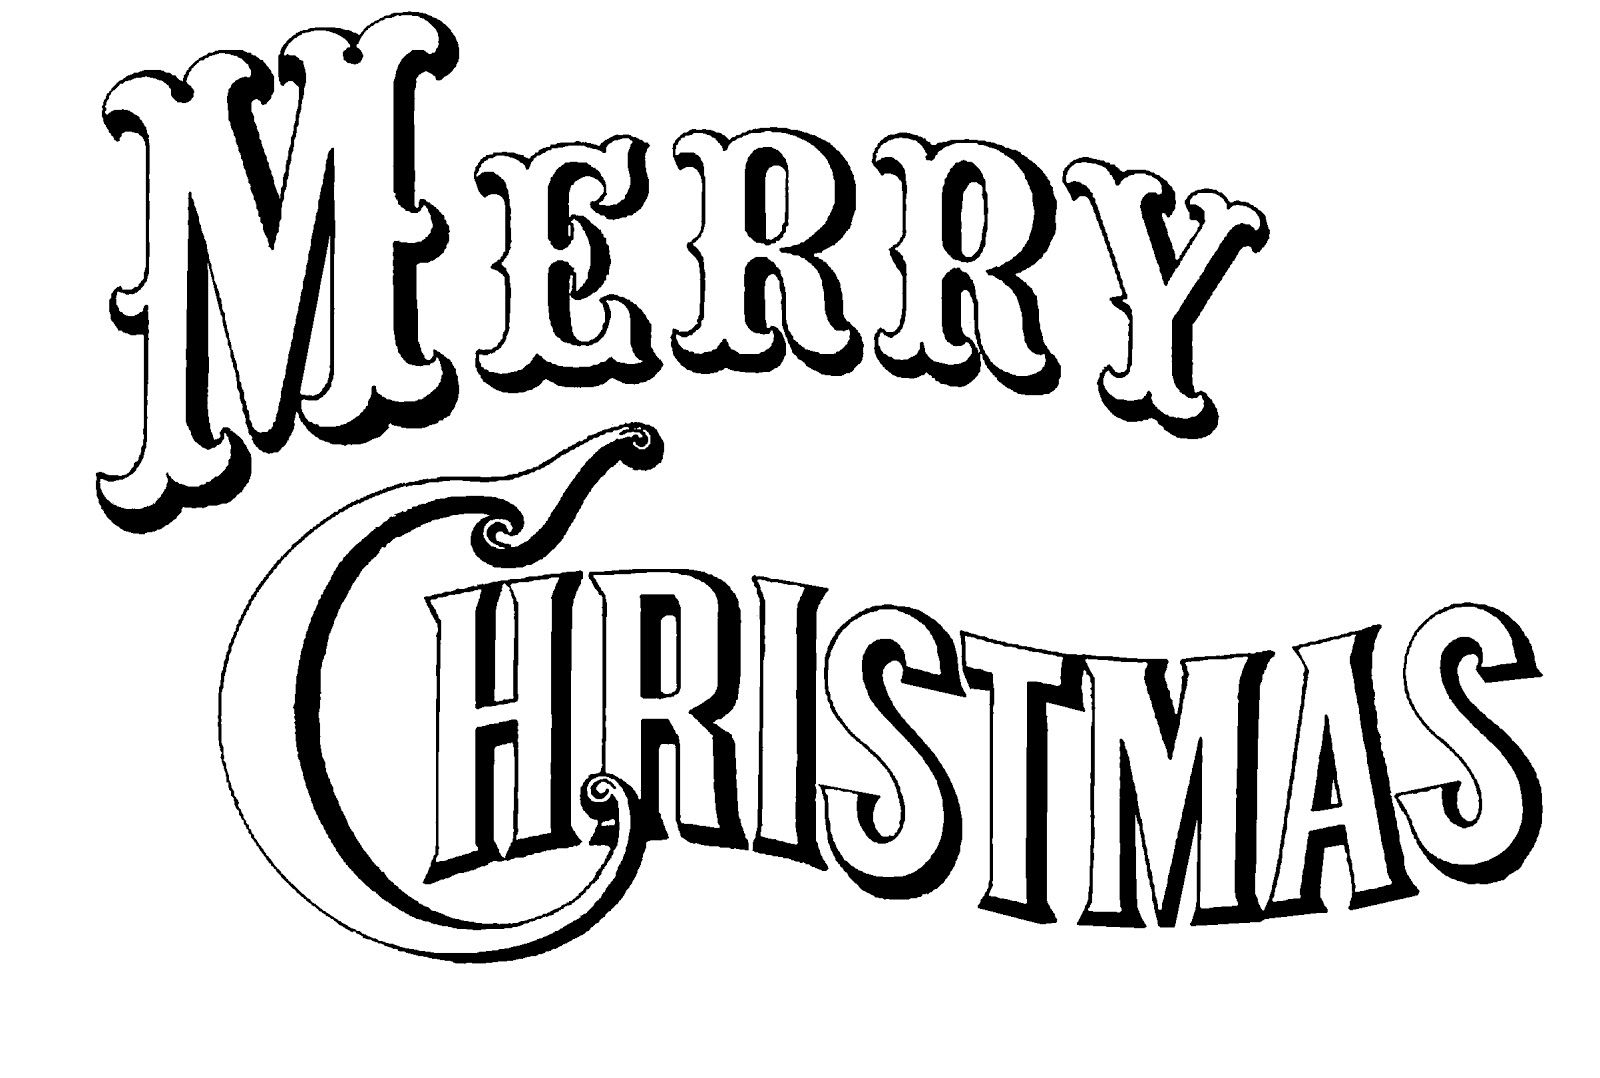 17 Best images about Christmas Clip Art on Pinterest | Large ...